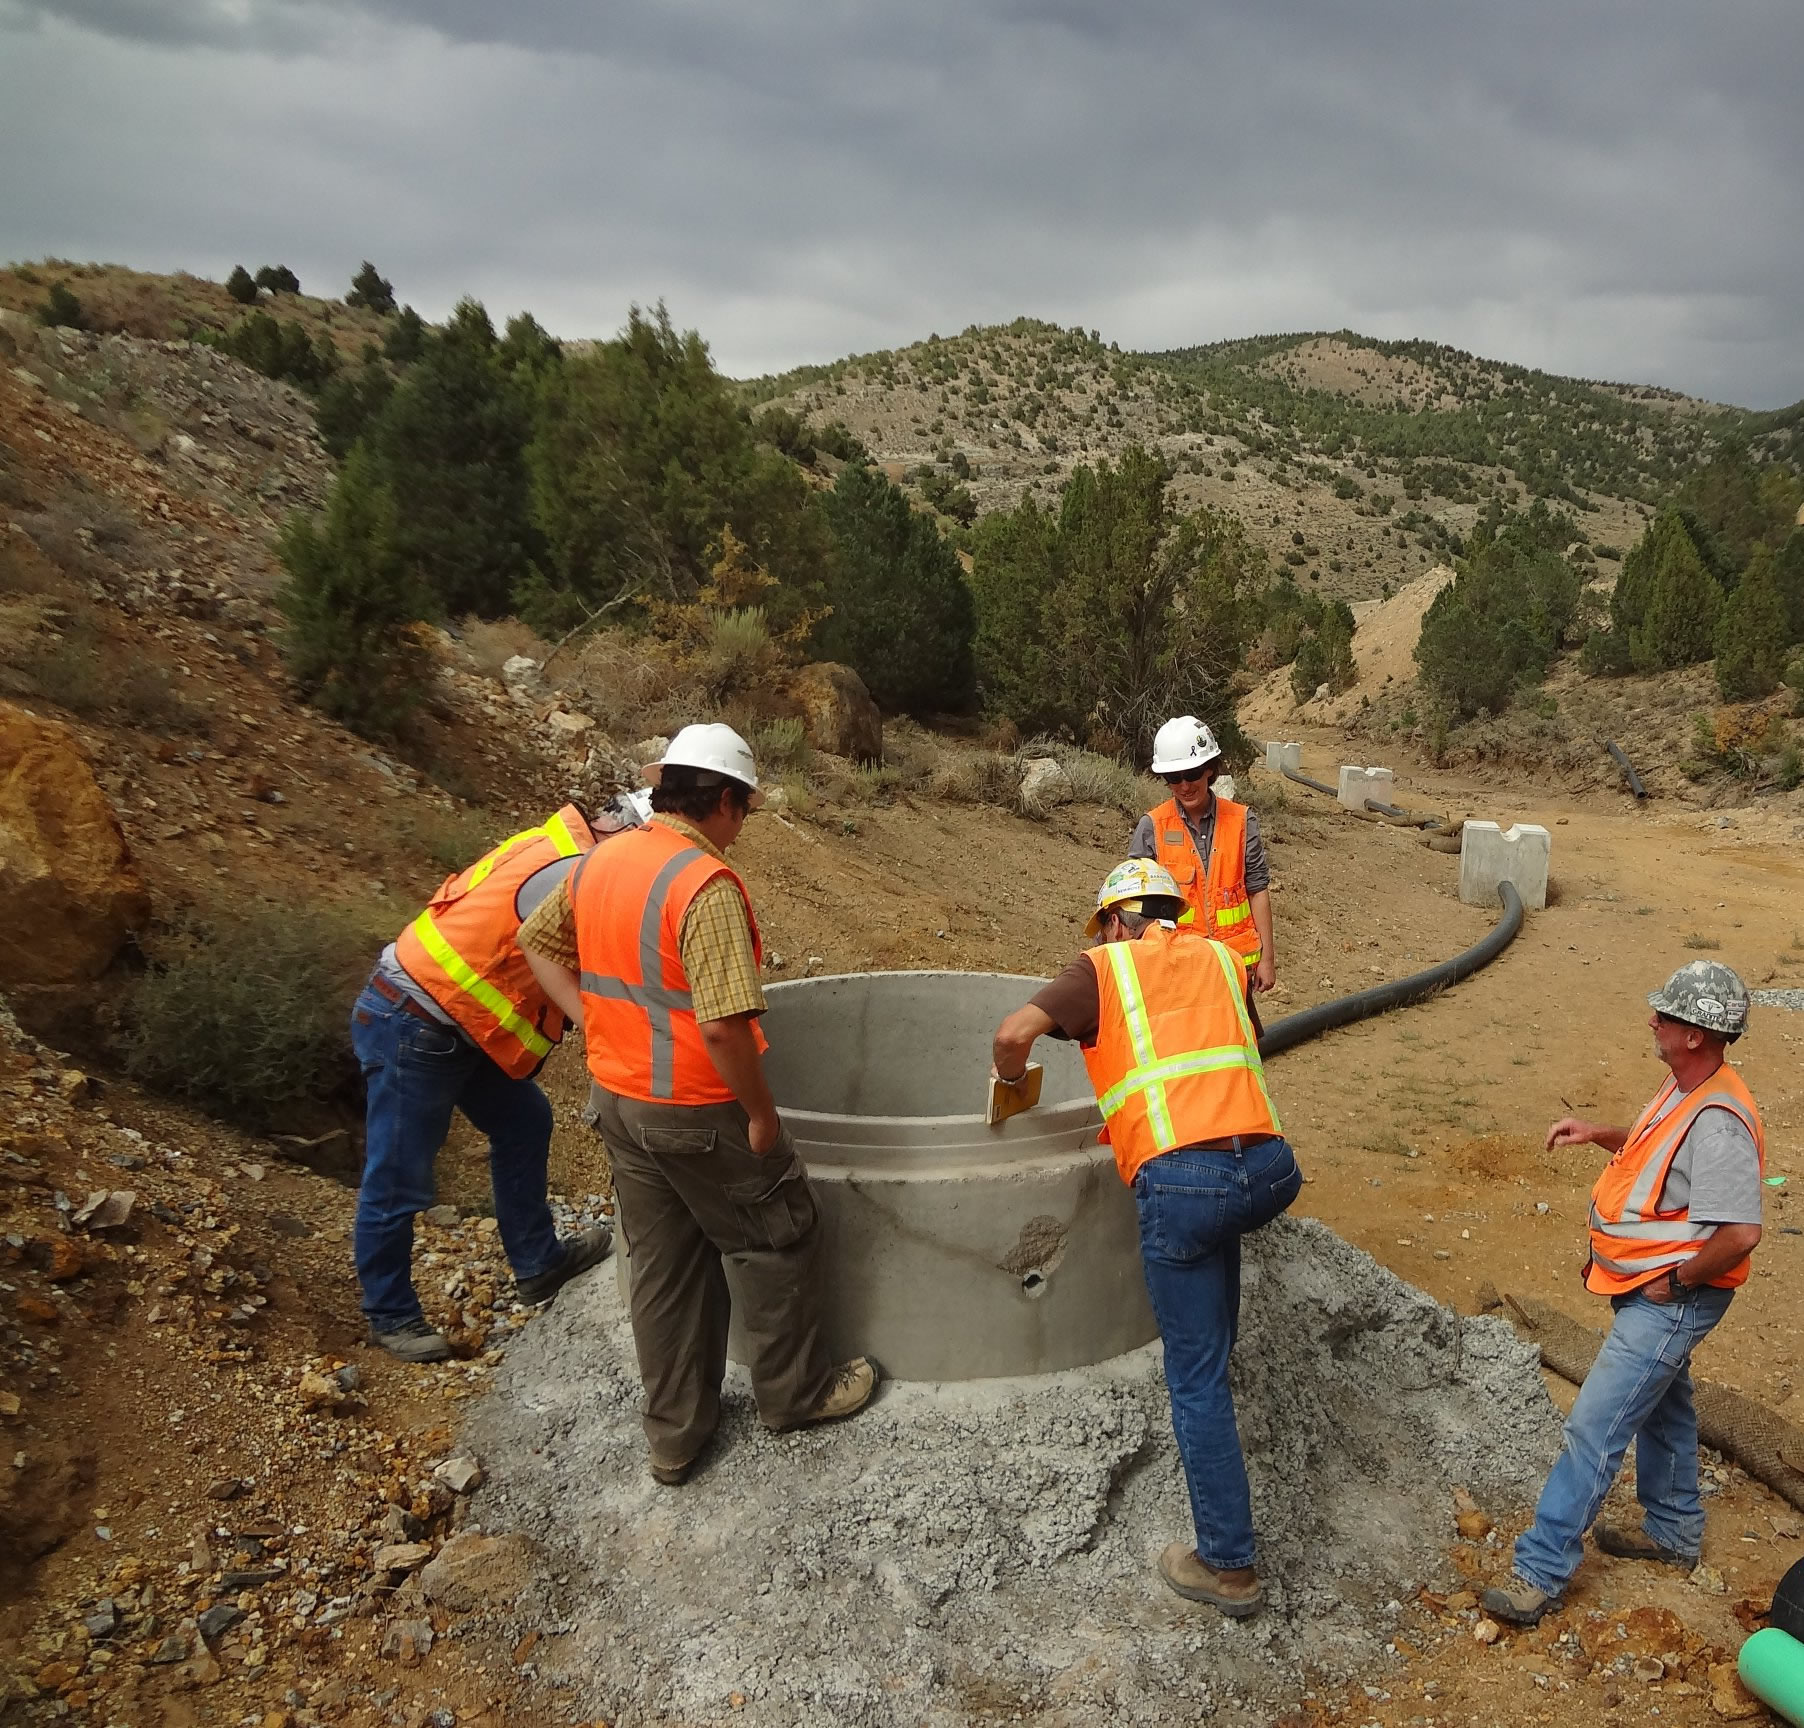 BMRR employees inspecting a sump near a mine site.